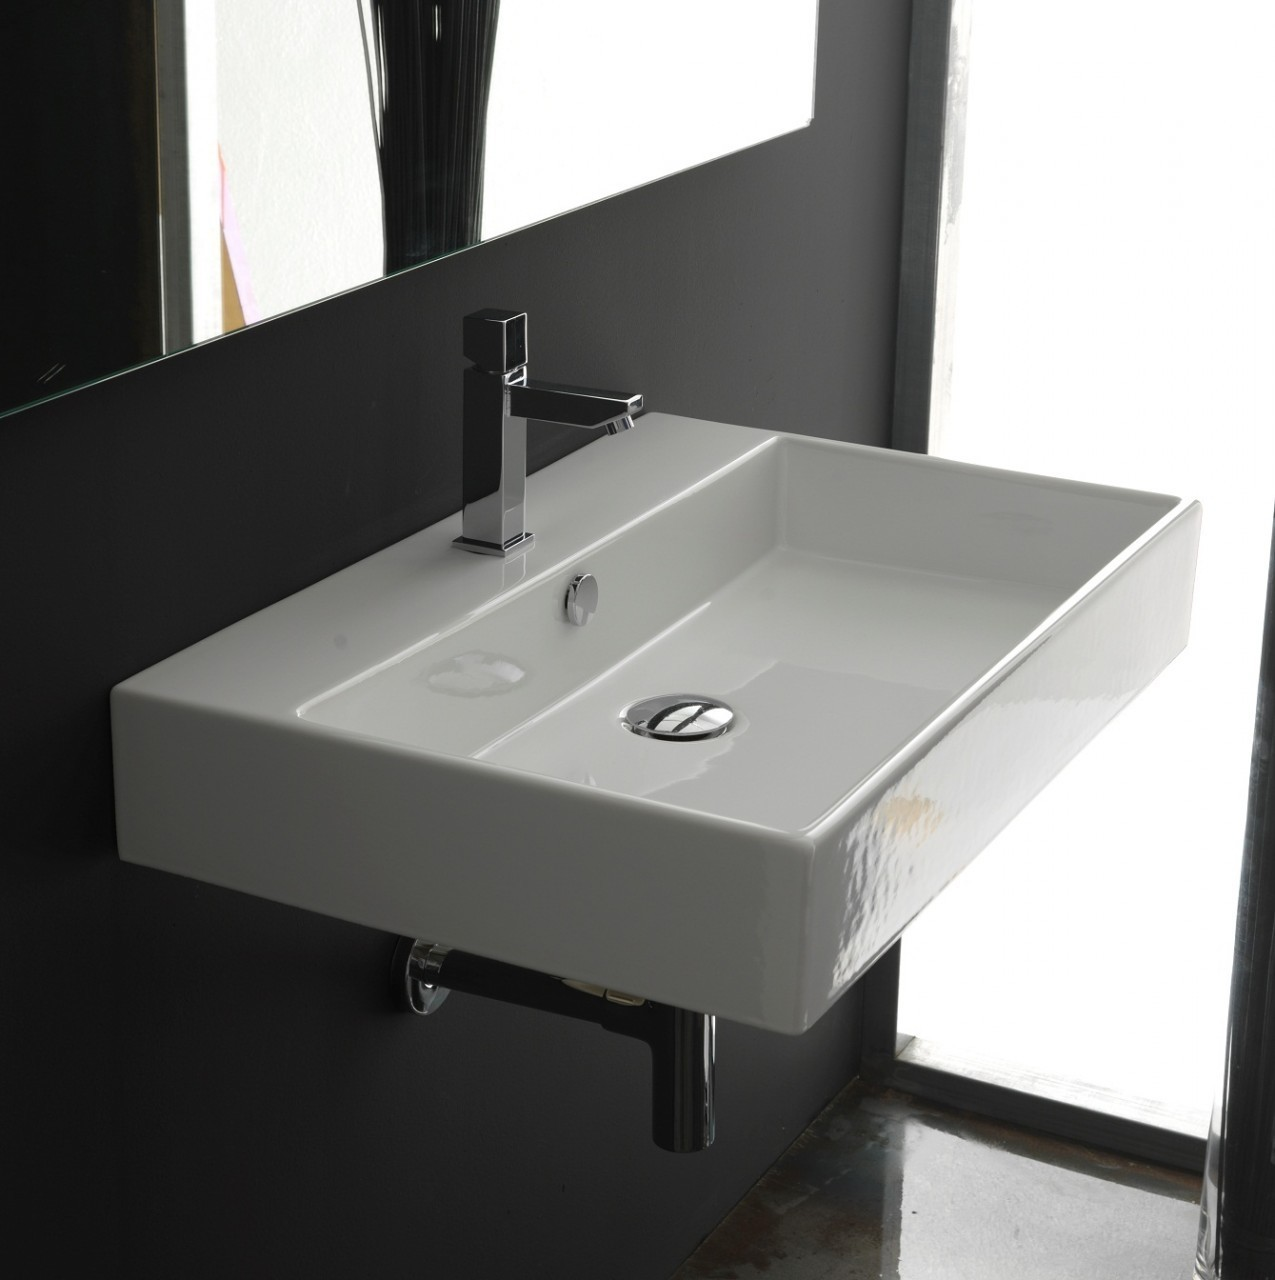 Altamarea Unusual Wall Hung Bathroom Vanities with Sink photo - 3